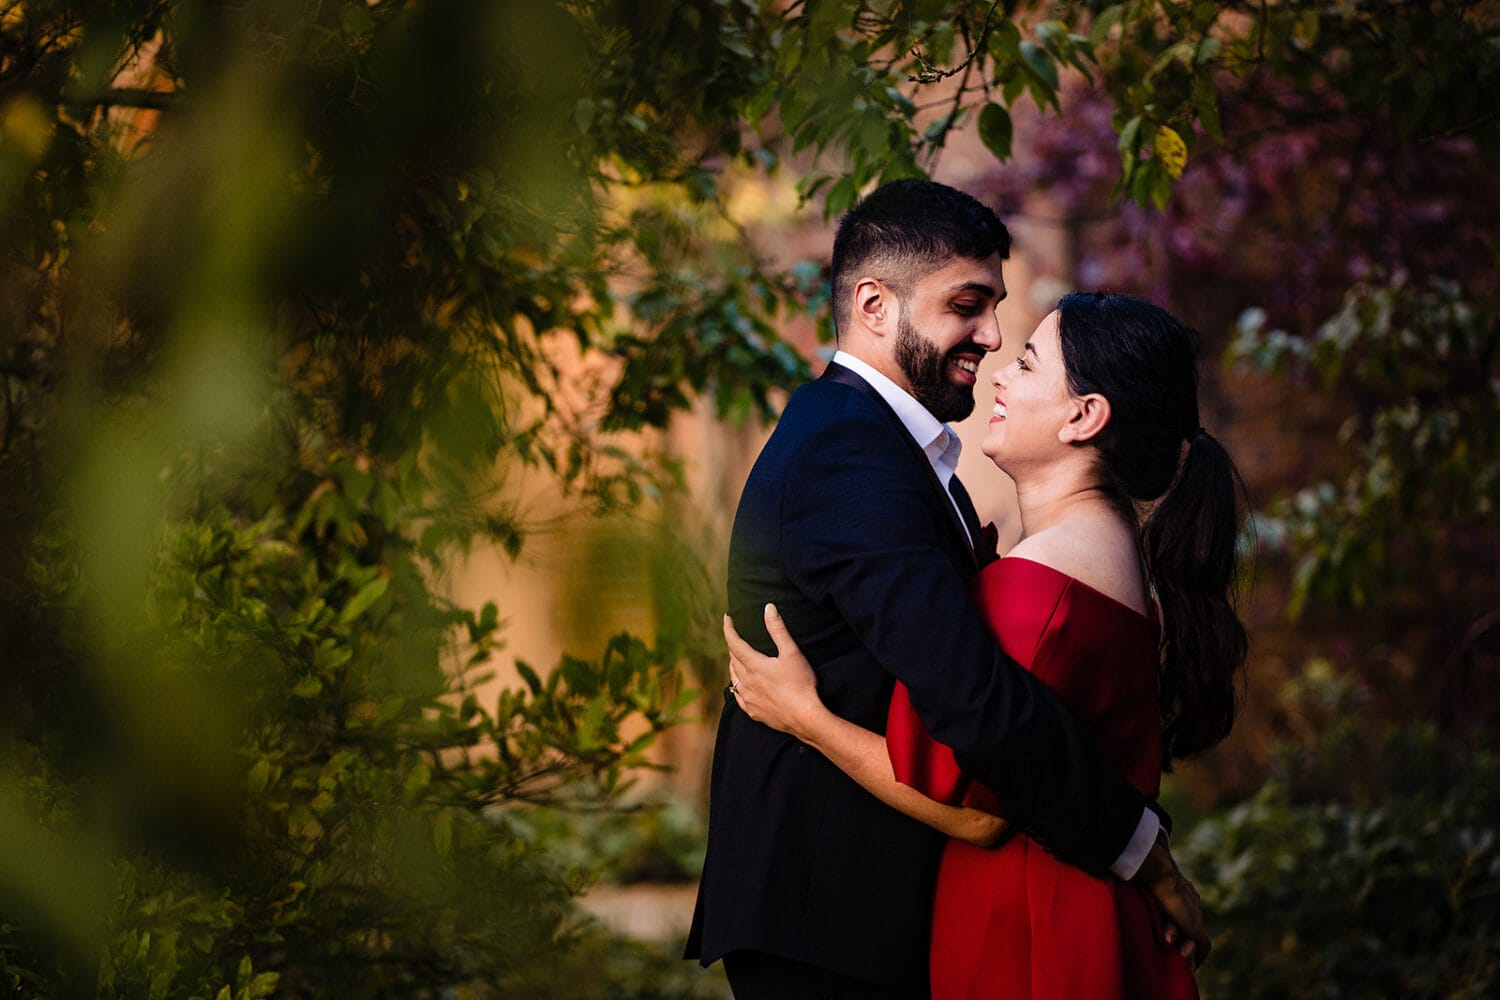 Golden Light Engagement at London's Hill Garden and Pergola   Maria Assia Photography